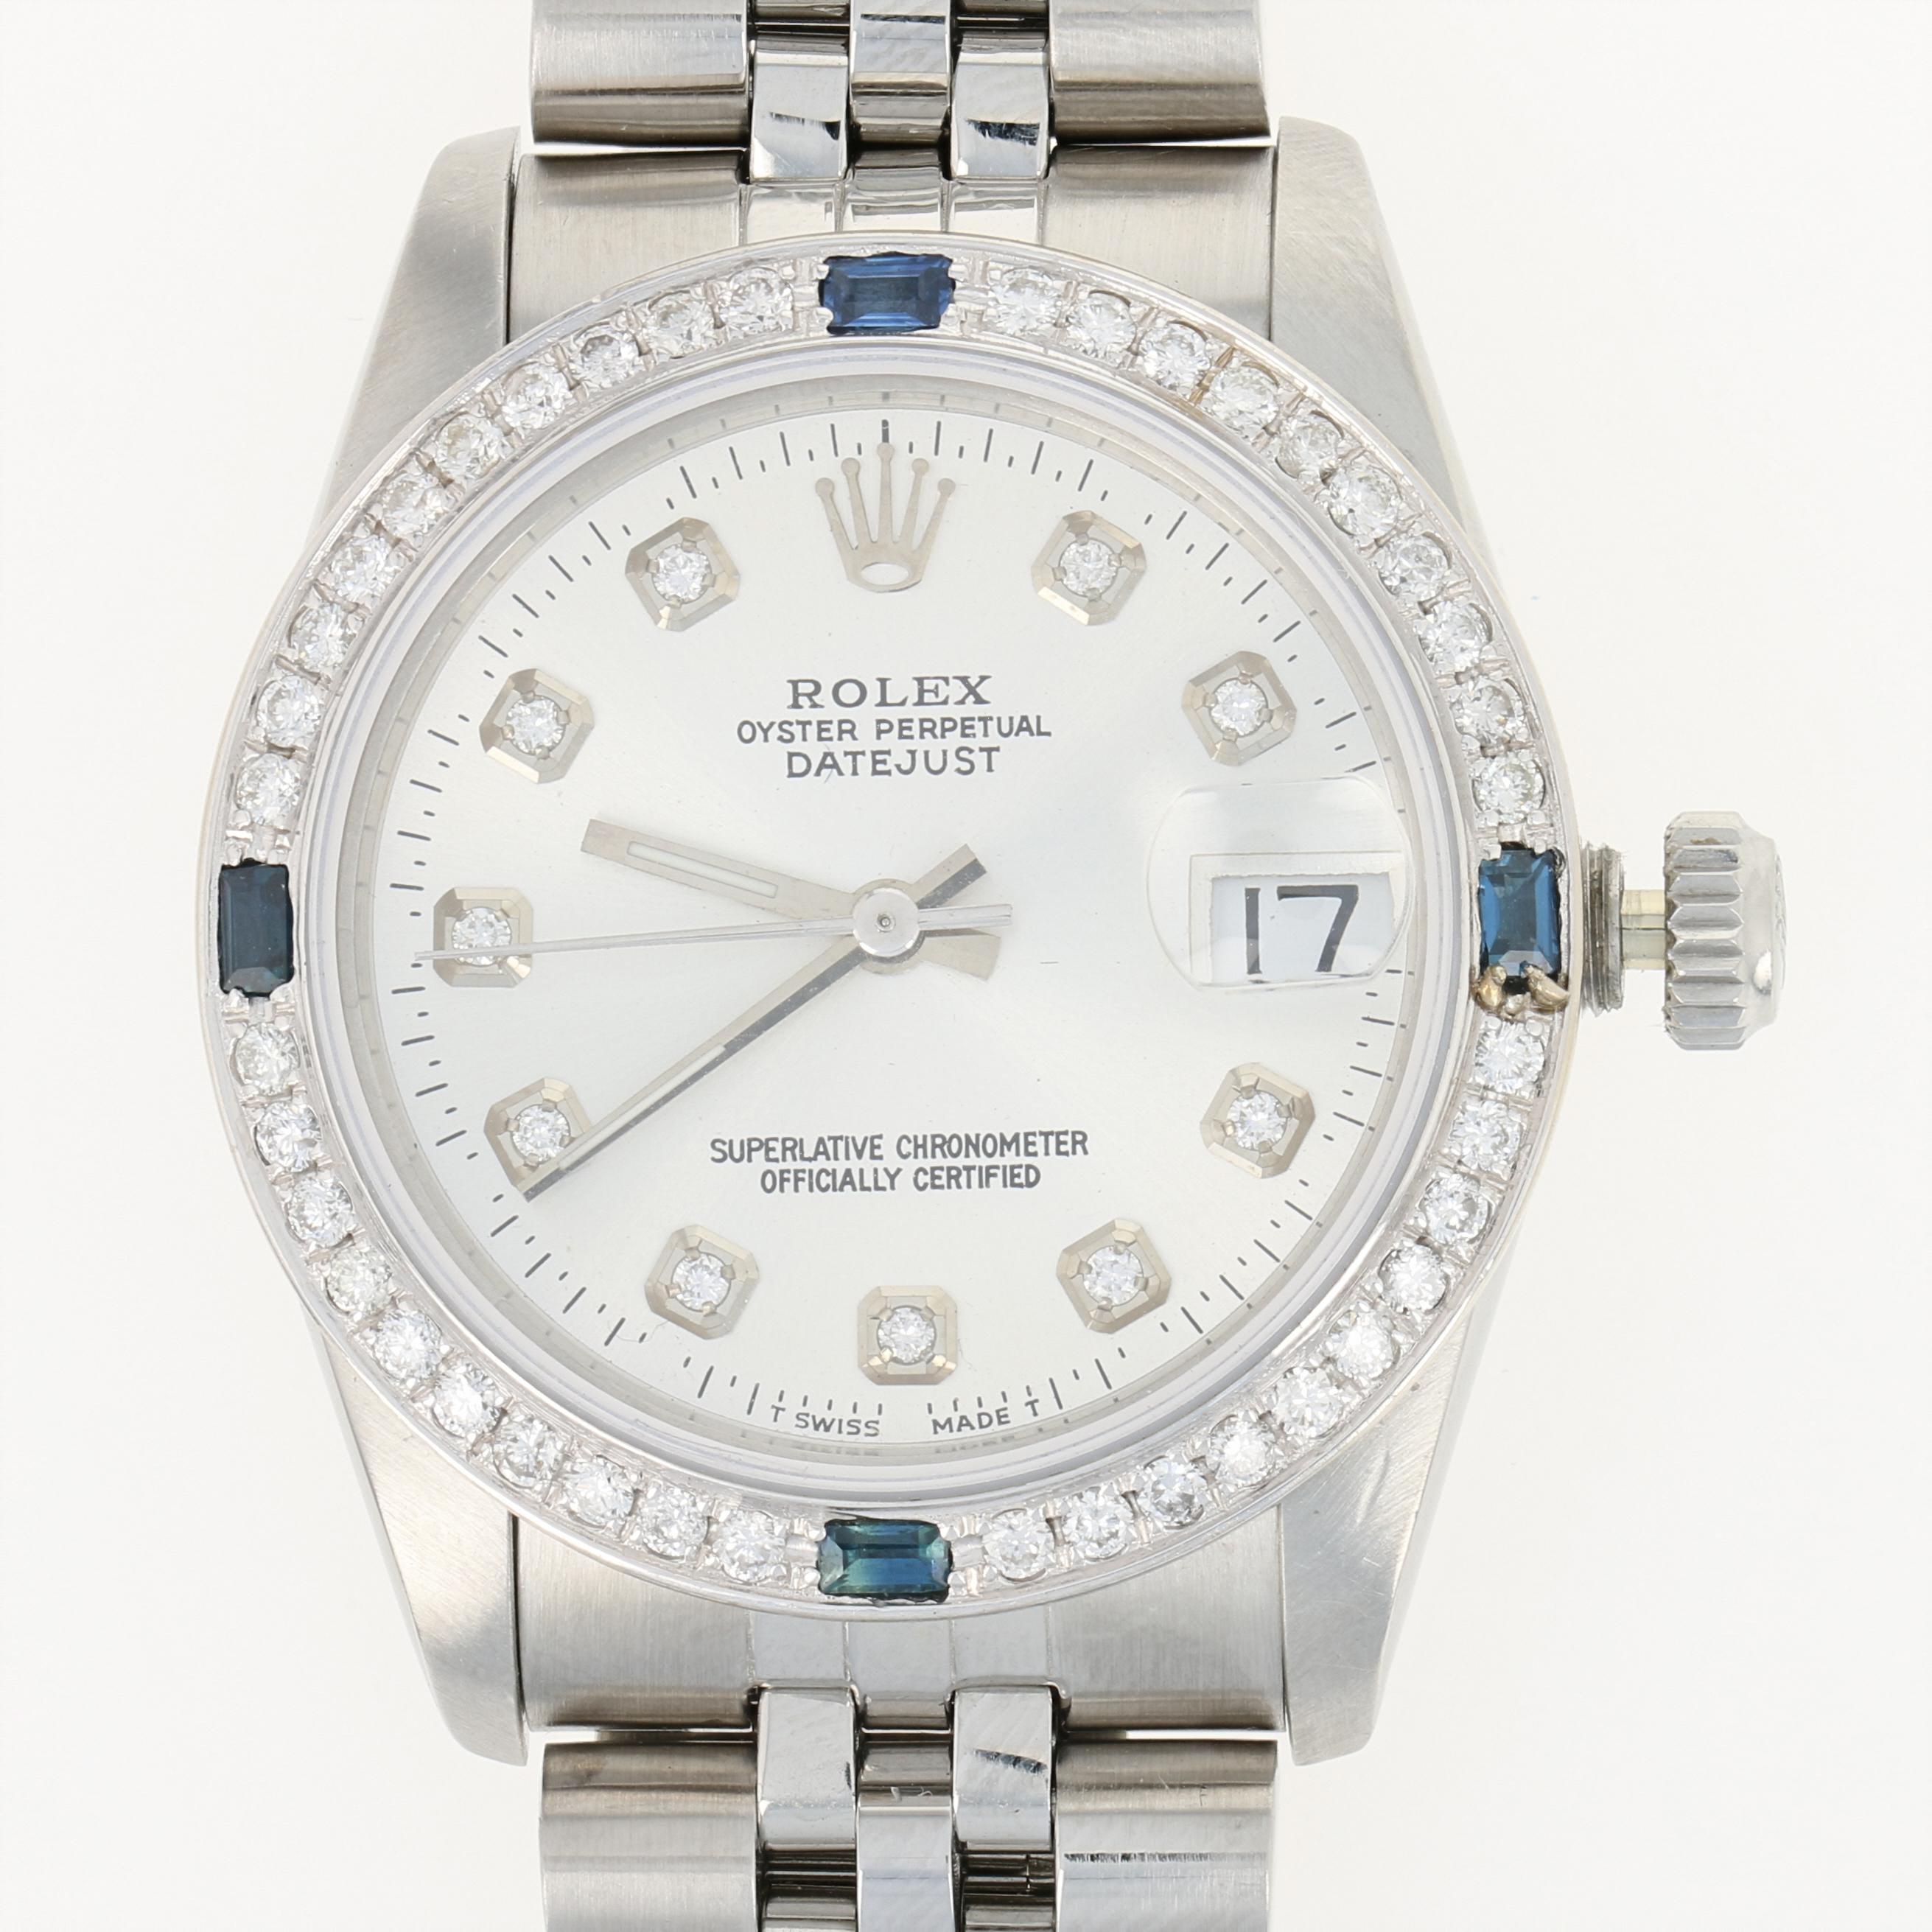 5edaf82934c Rolex Oyster Perpetual Datejust Ladies Watch Stainless Automatic 2Yr ...